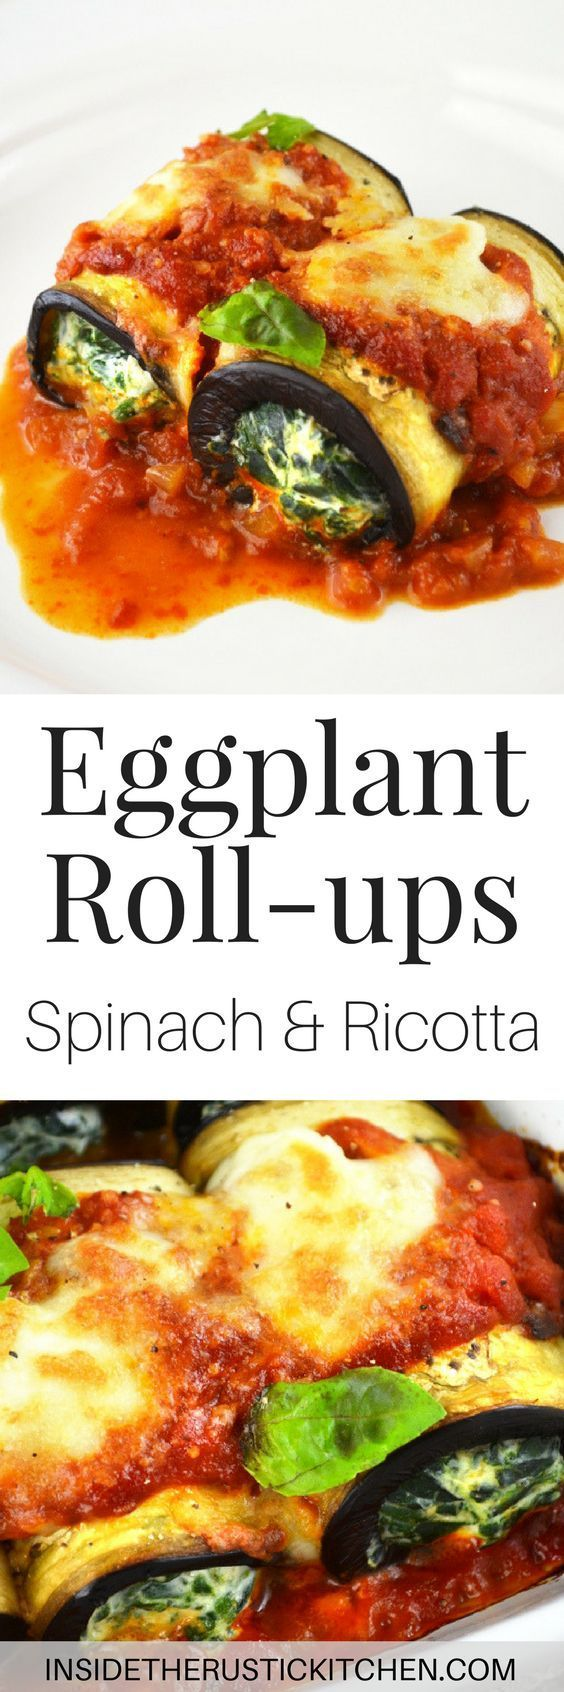 Zoes Kitchen Spinach Roll Ups best 20+ spinach roll ups ideas on pinterest | spinach rolls, bite